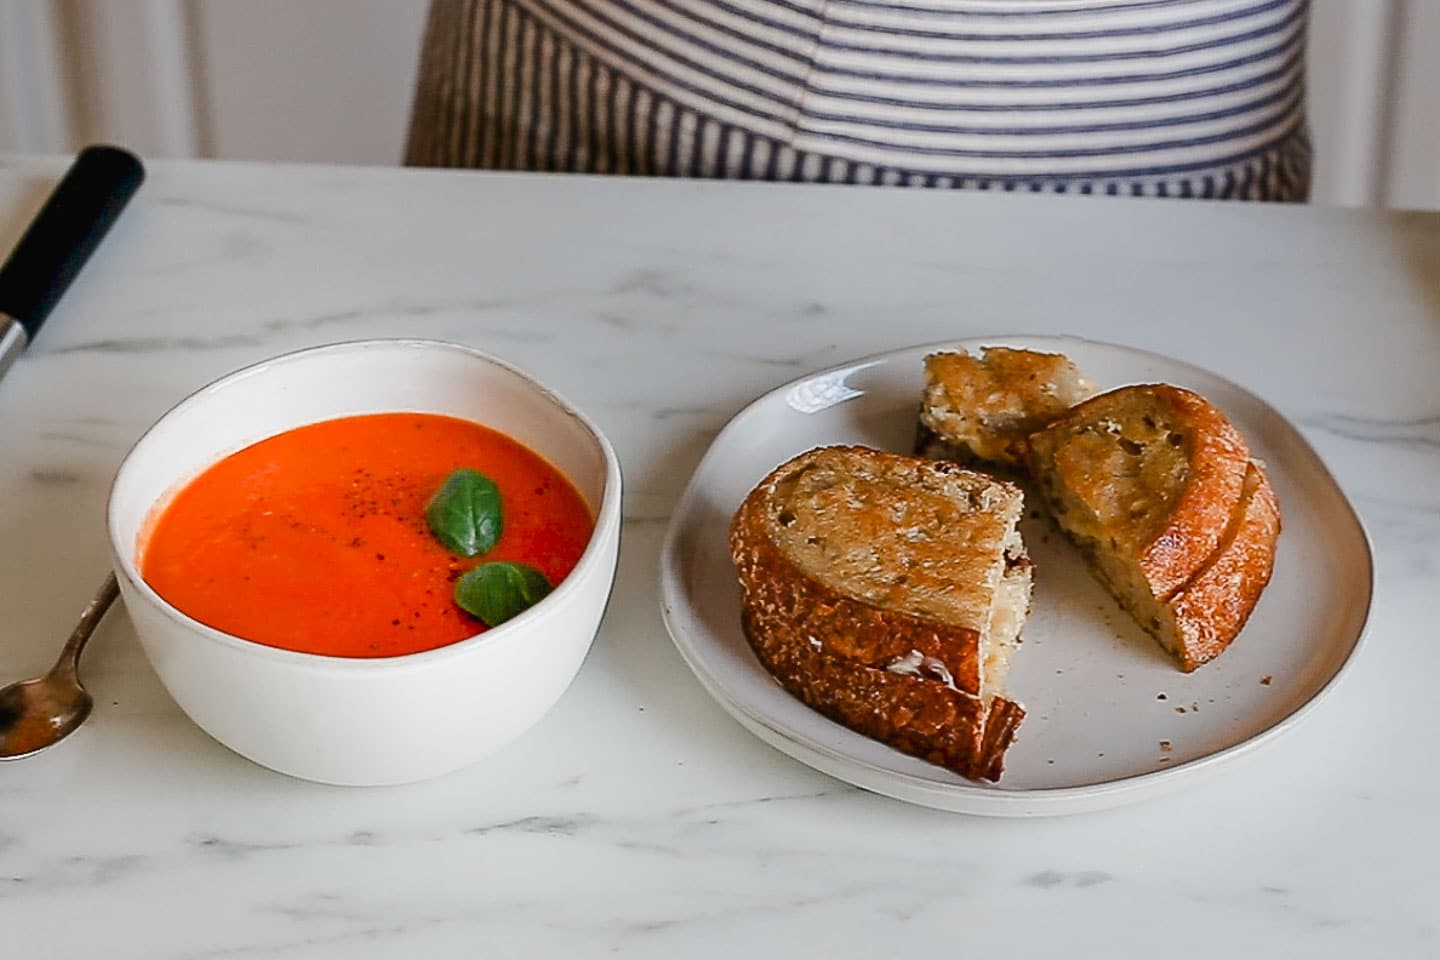 Bowl of soup and a grilled cheese sandwich on the table.